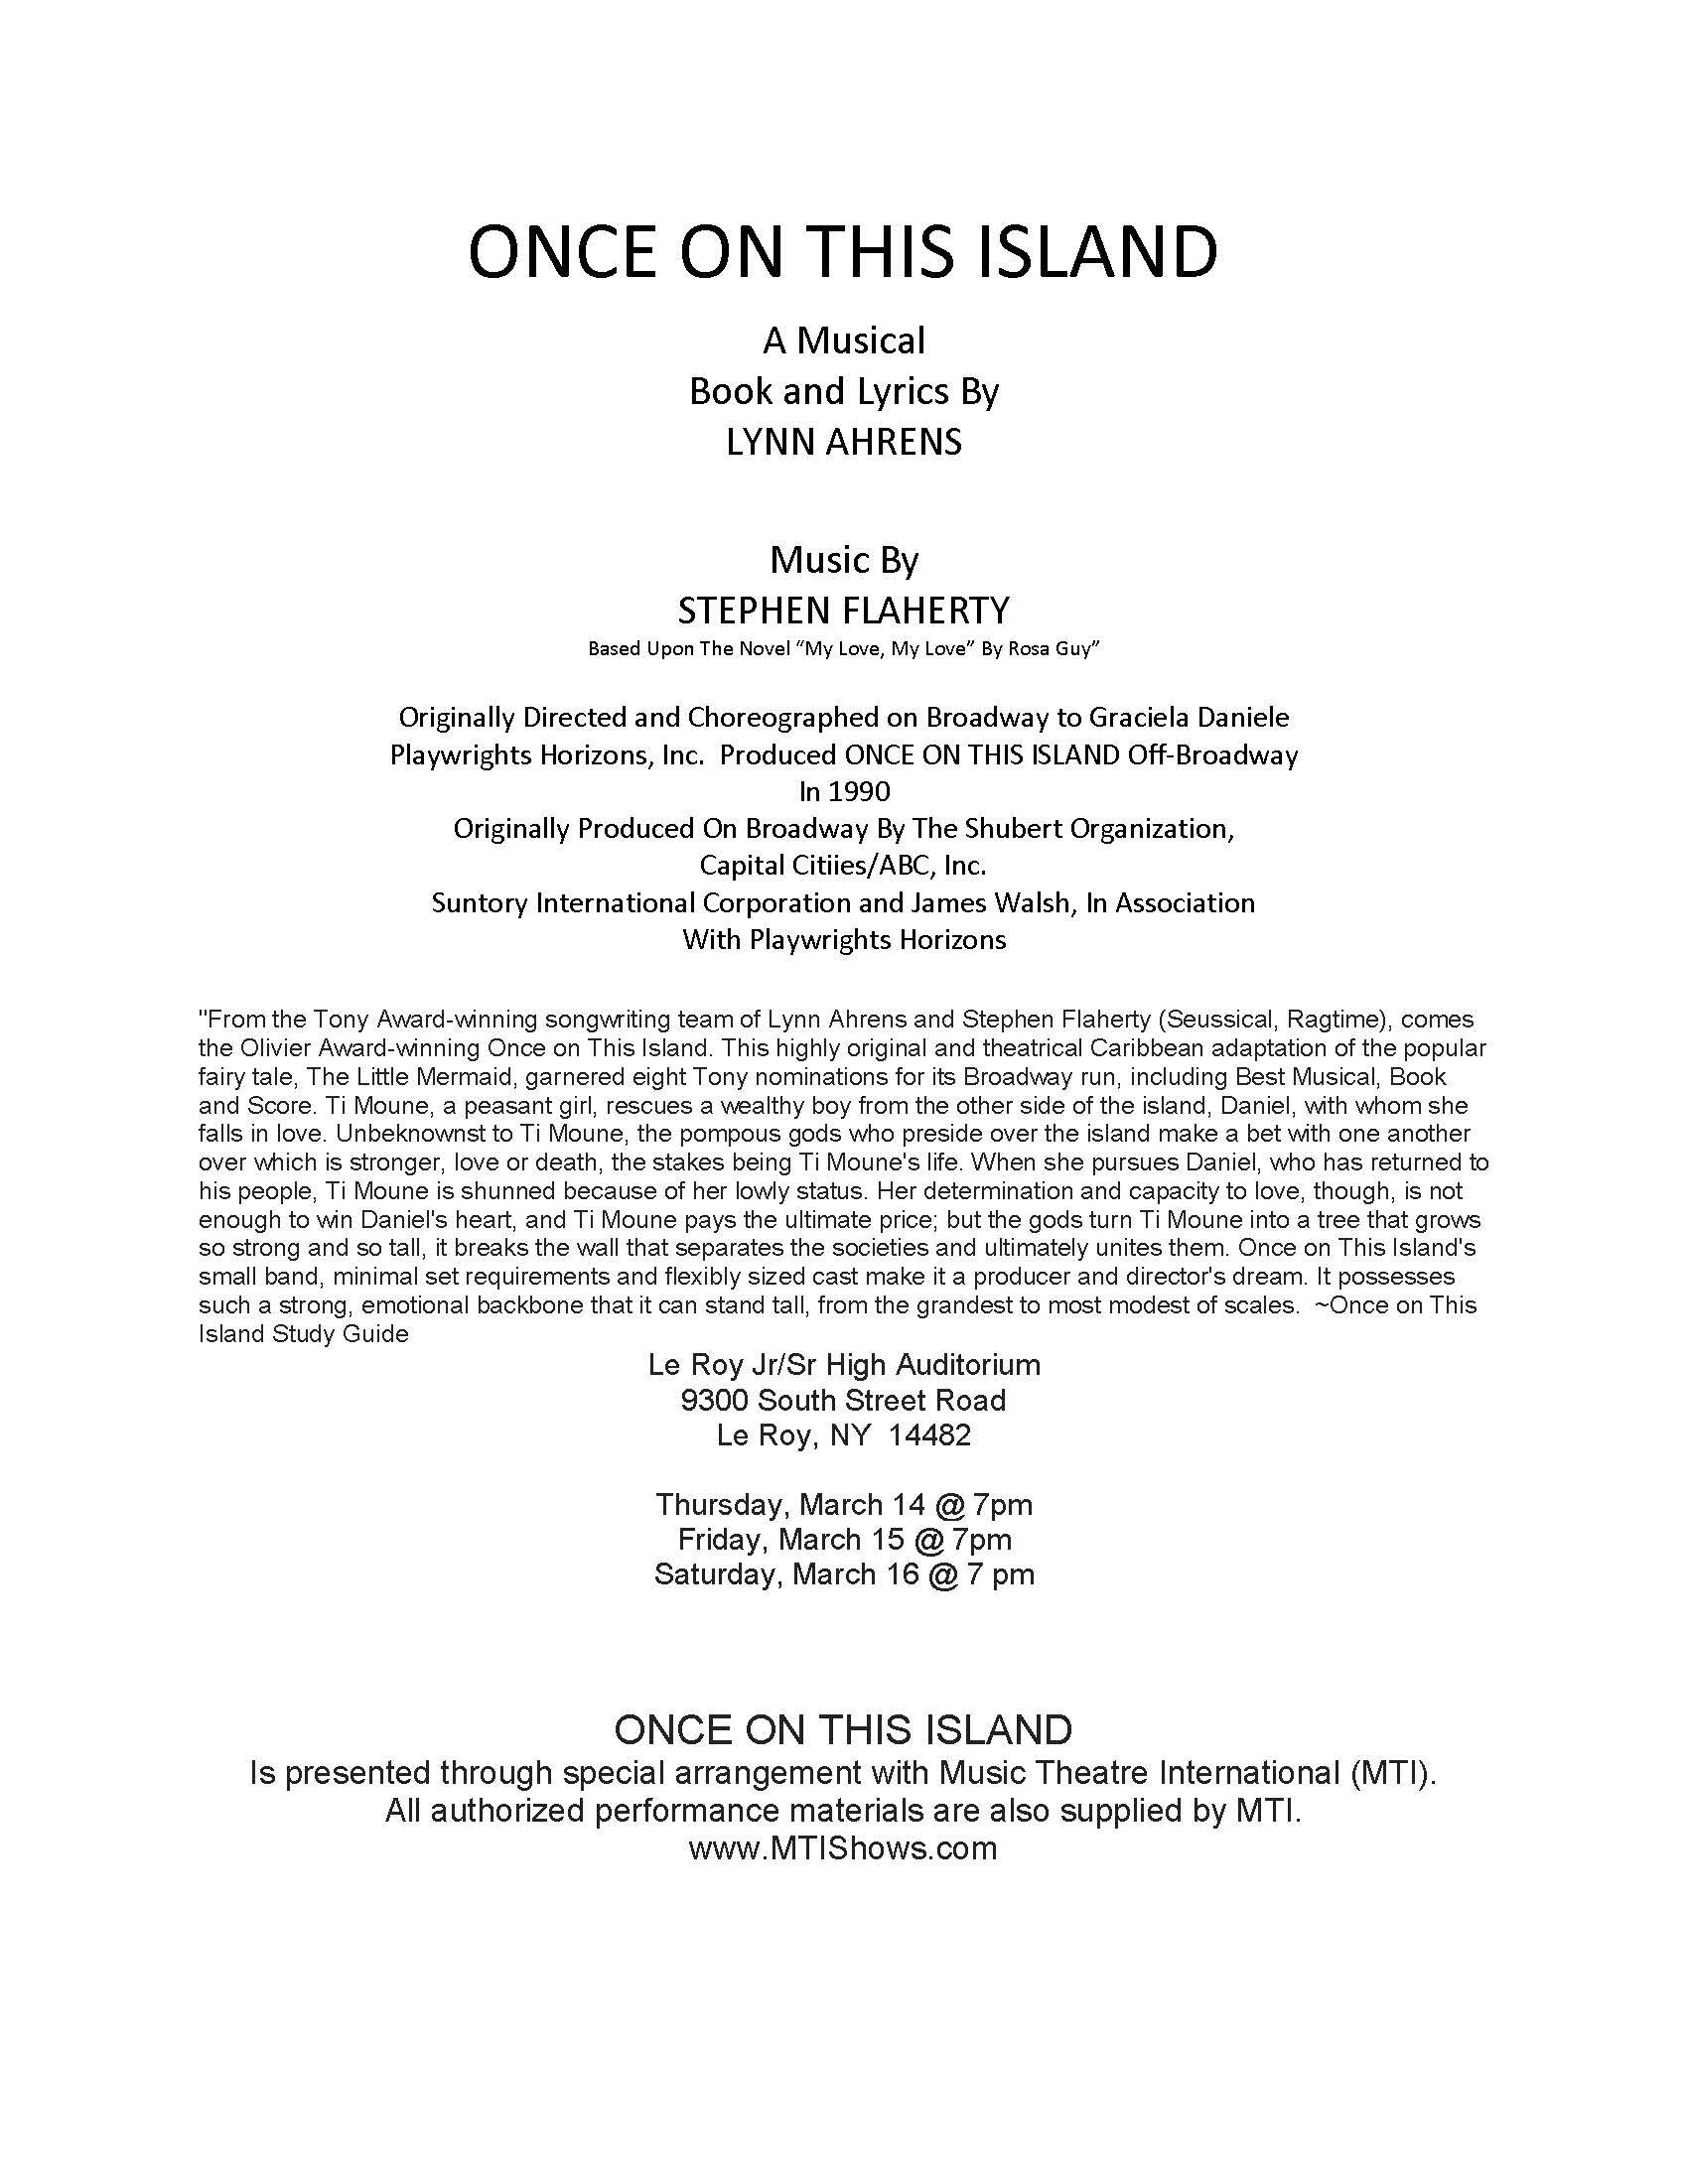 Billing Info for Musical Once on this Island